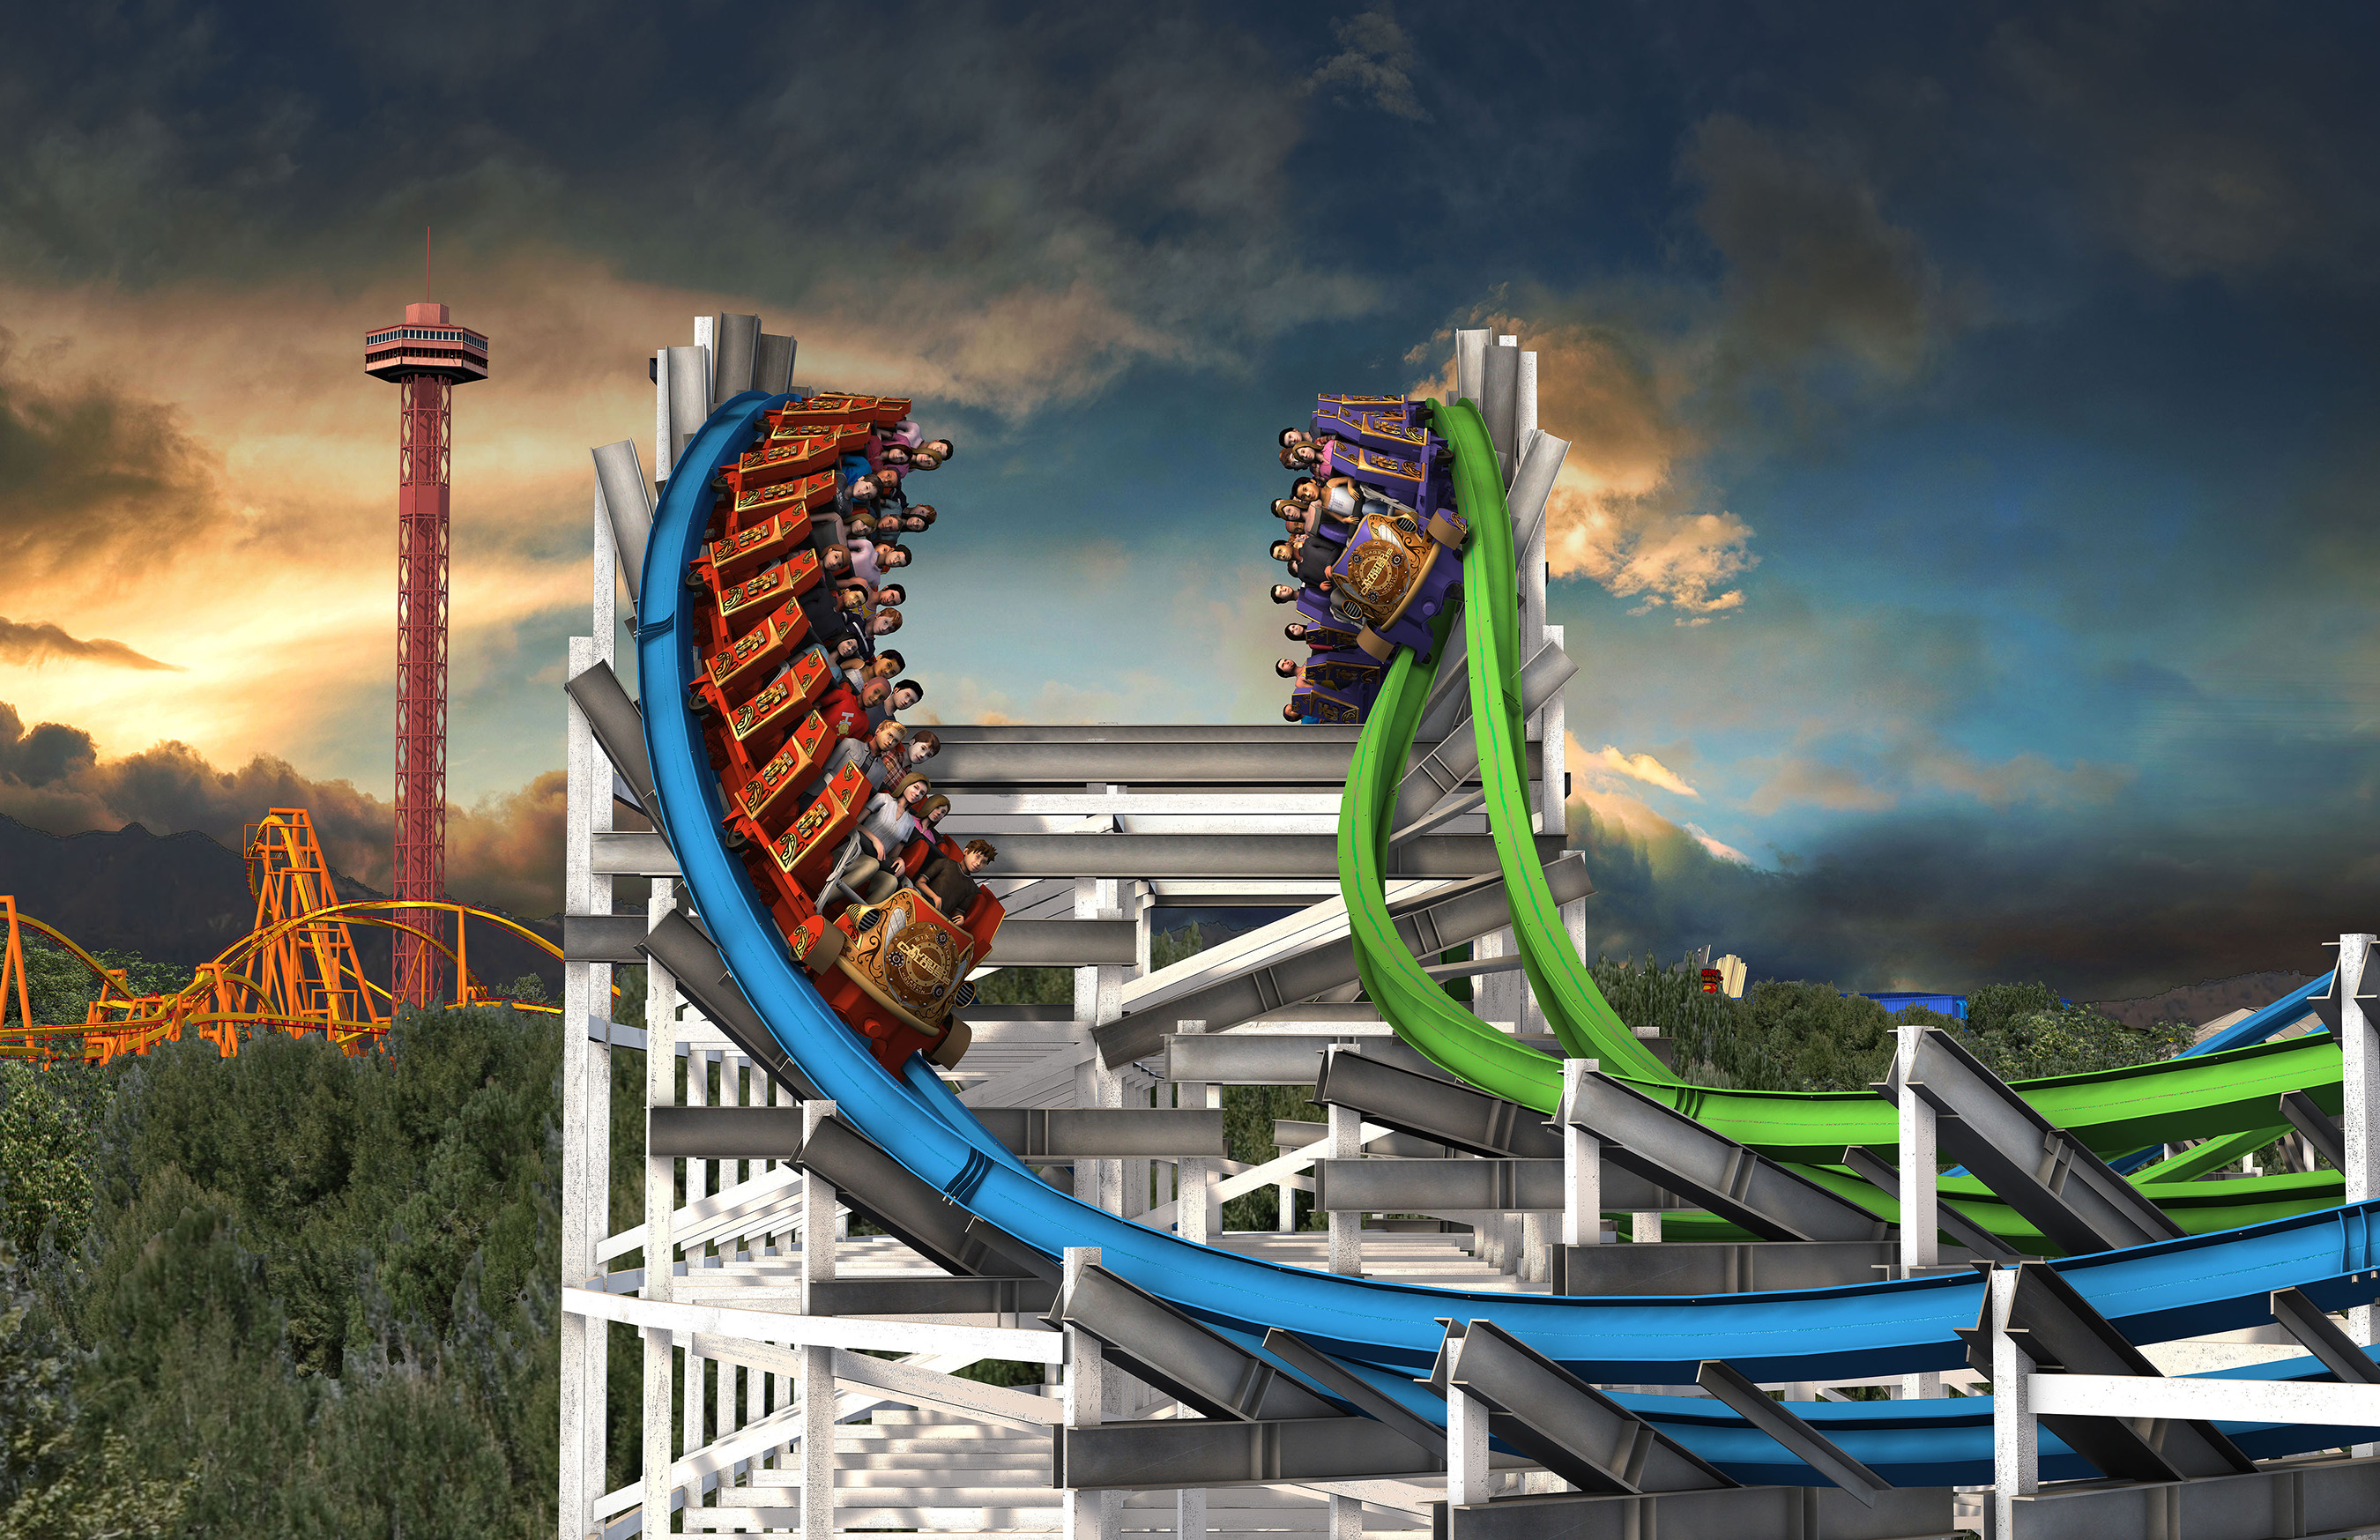 The new six flags ride